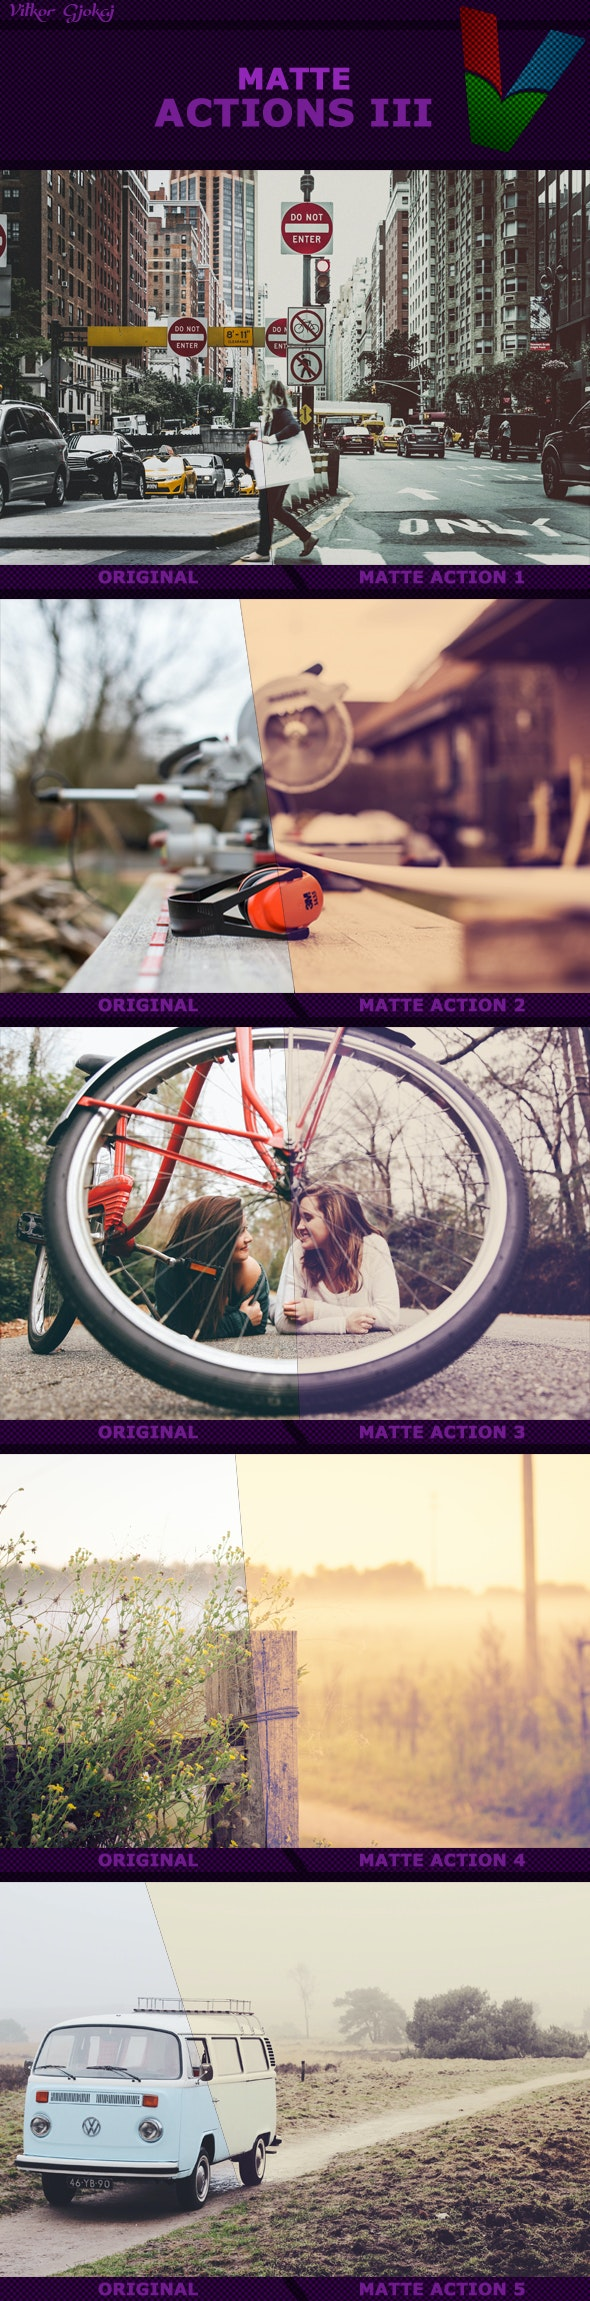 Matte Actions III - Photo Effects Actions